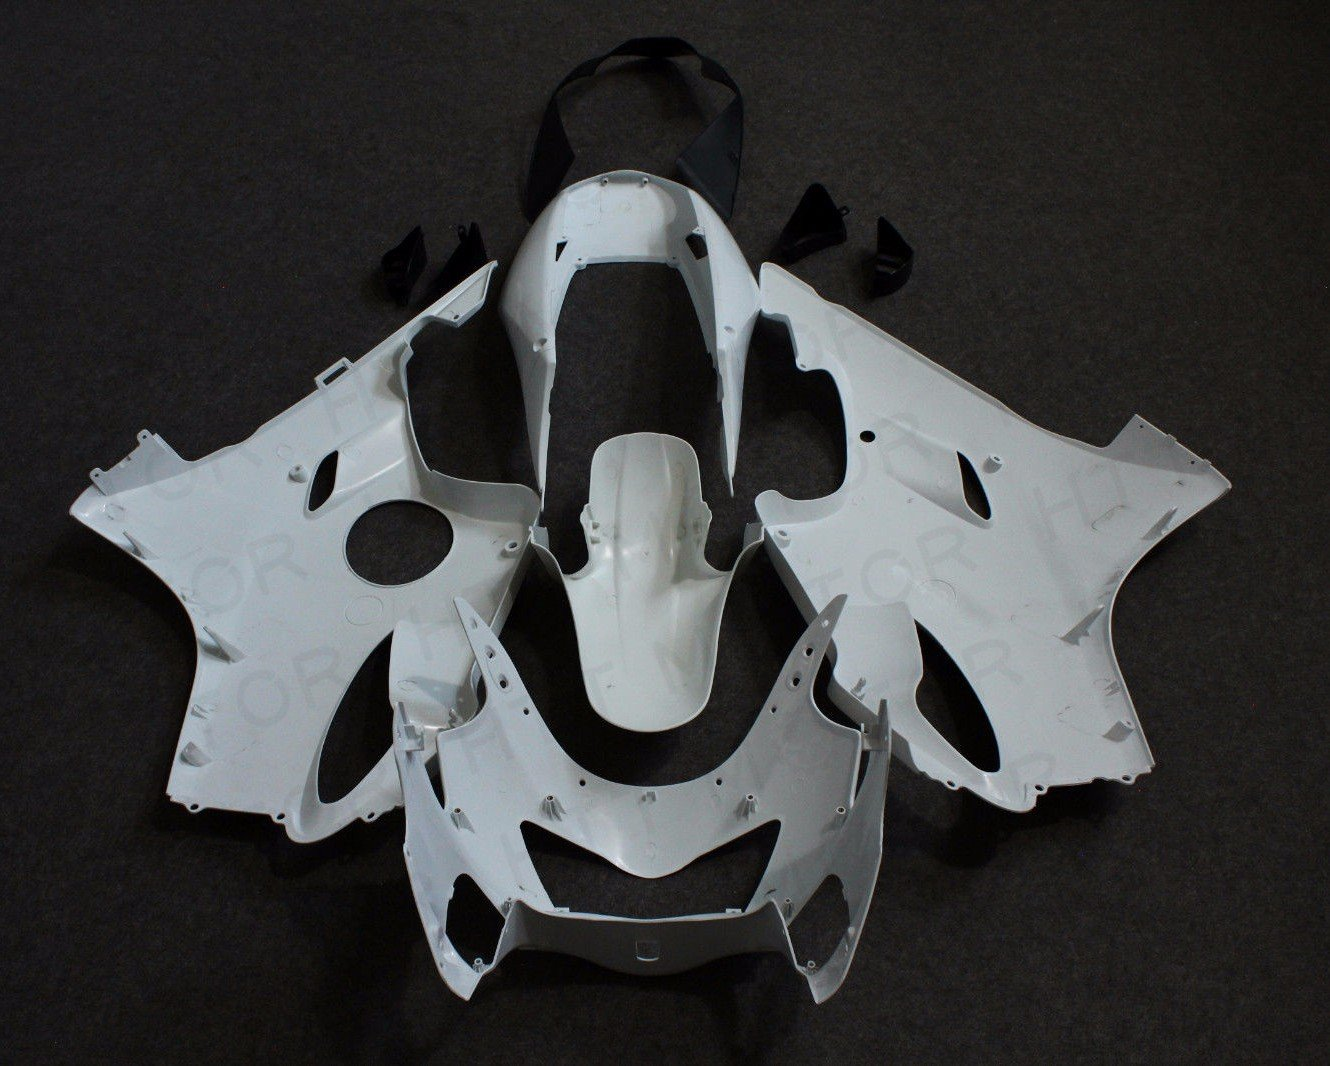 Parts Accessories For Honda CBR600 F4 1999 2000 Unpainted Fairing Body Work Kit CBR 600